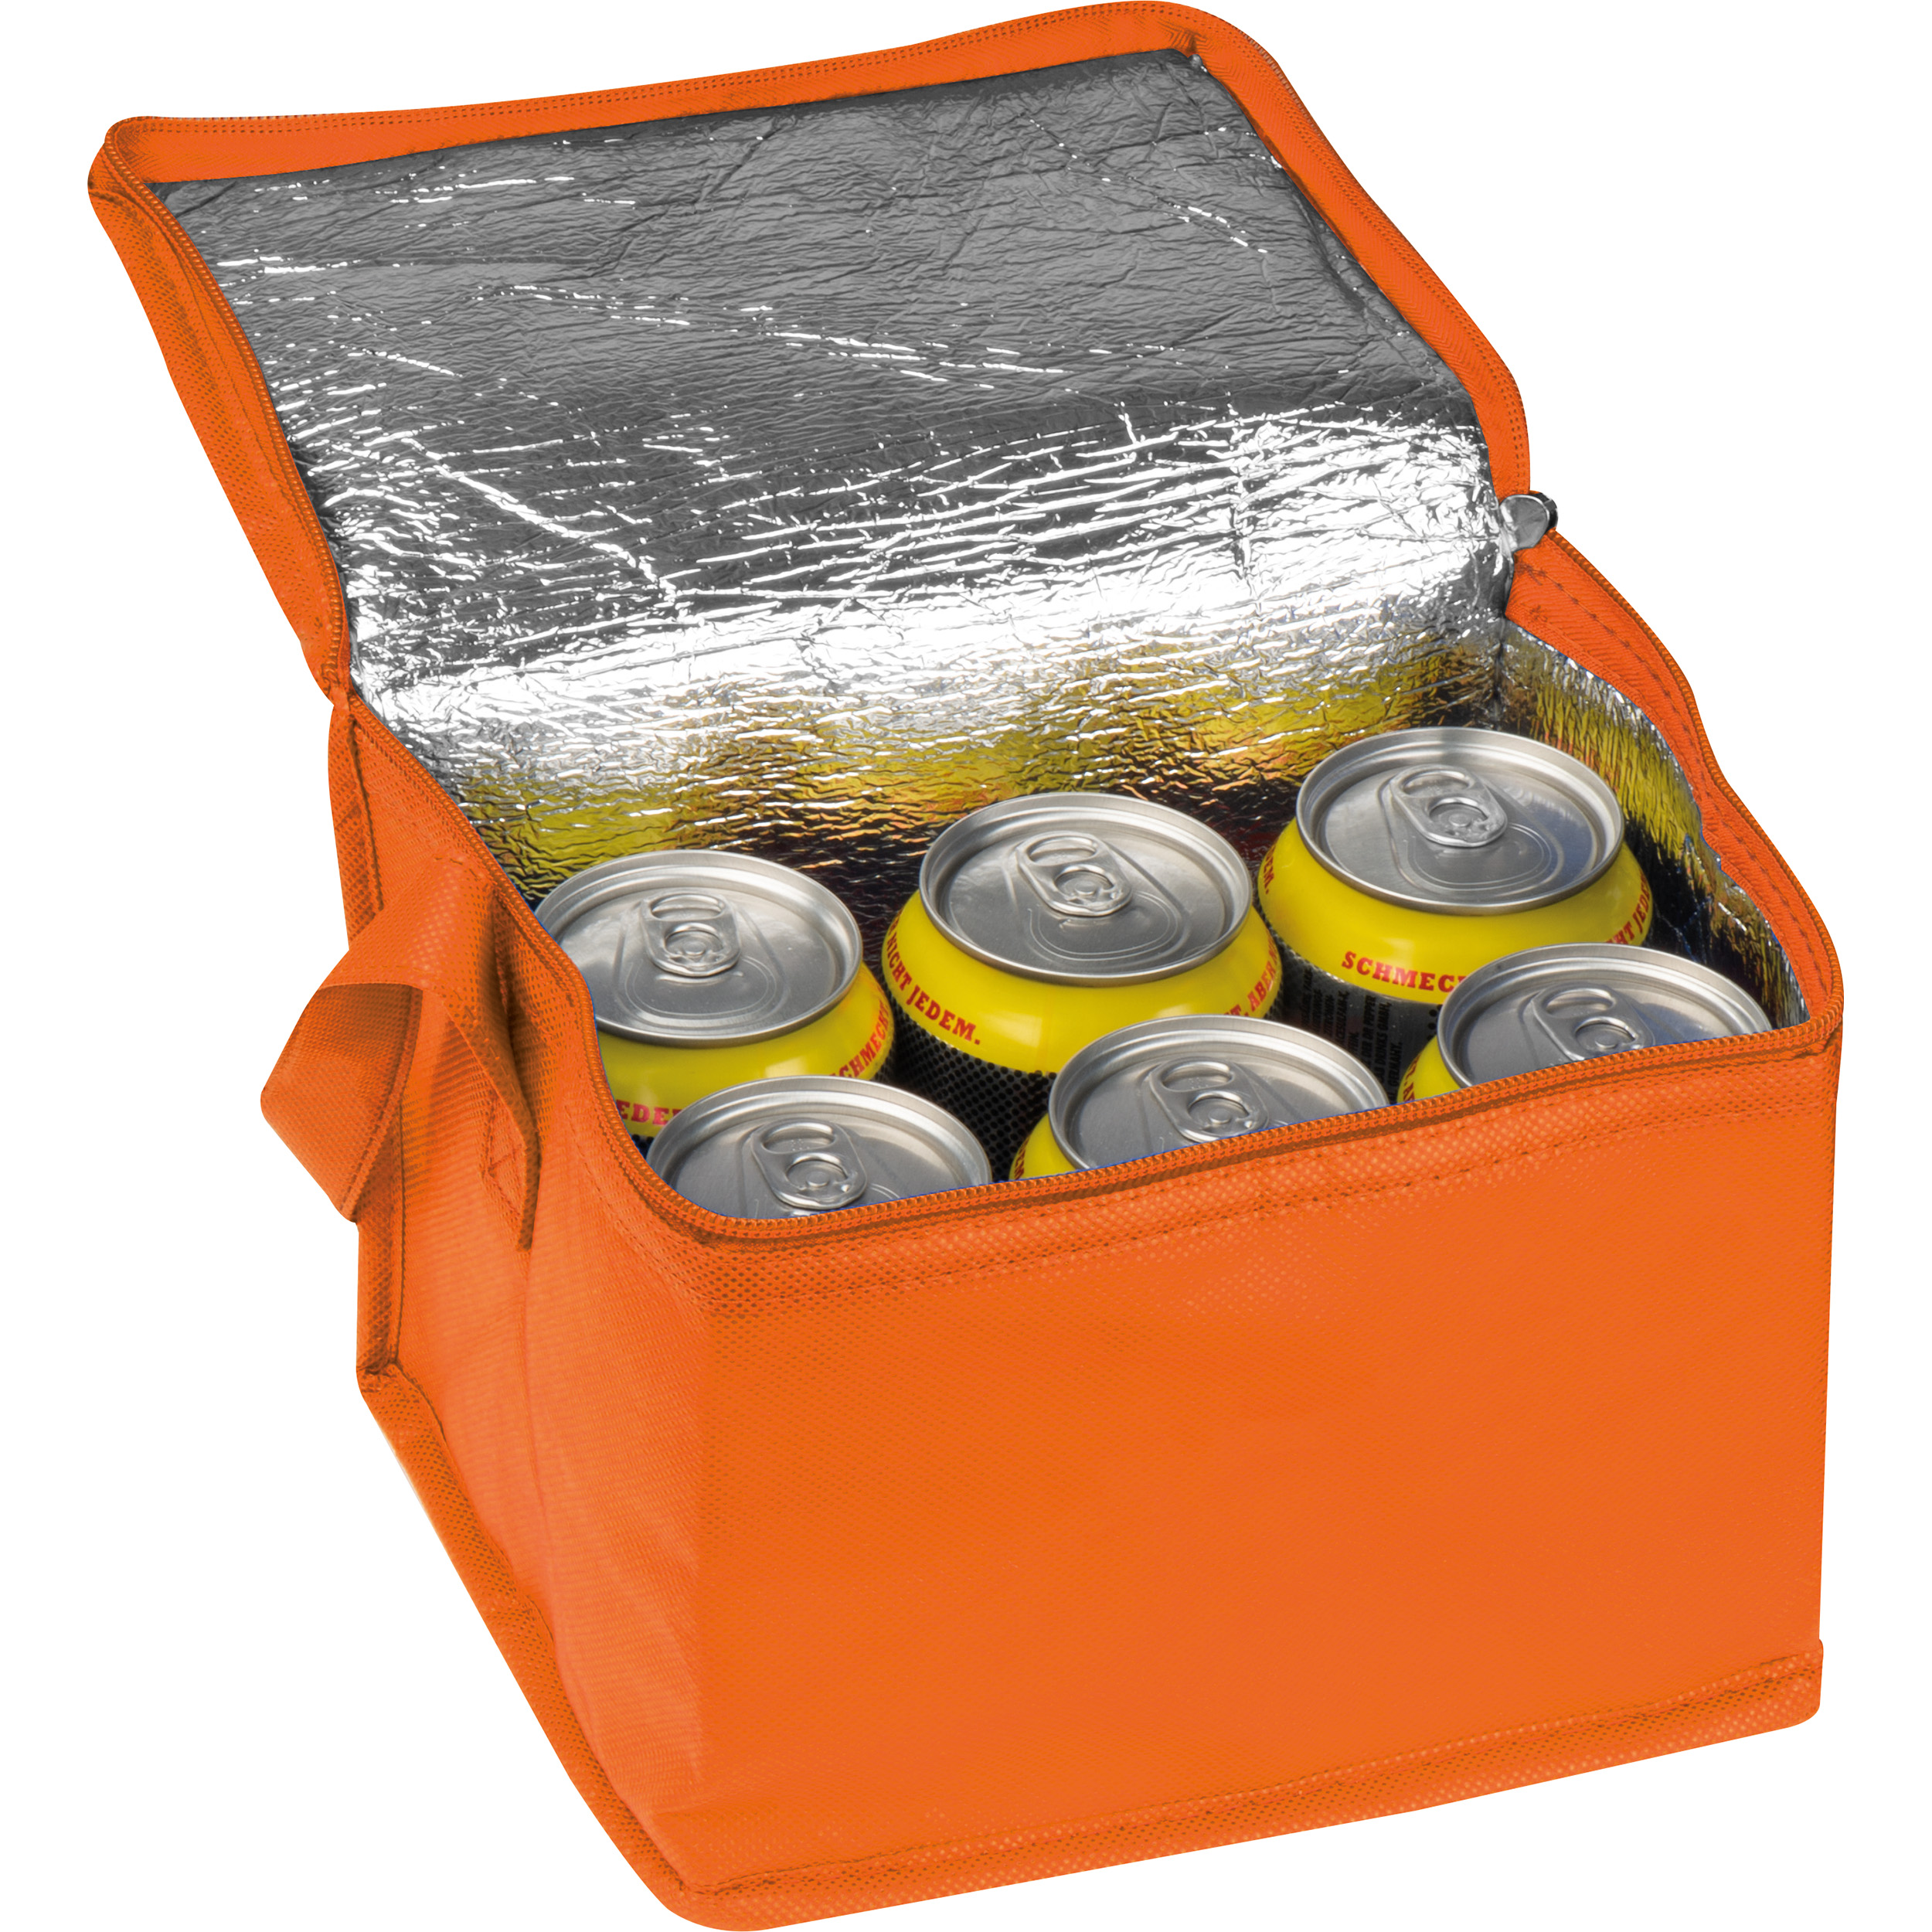 Non-woven cooling bag - 6 cans